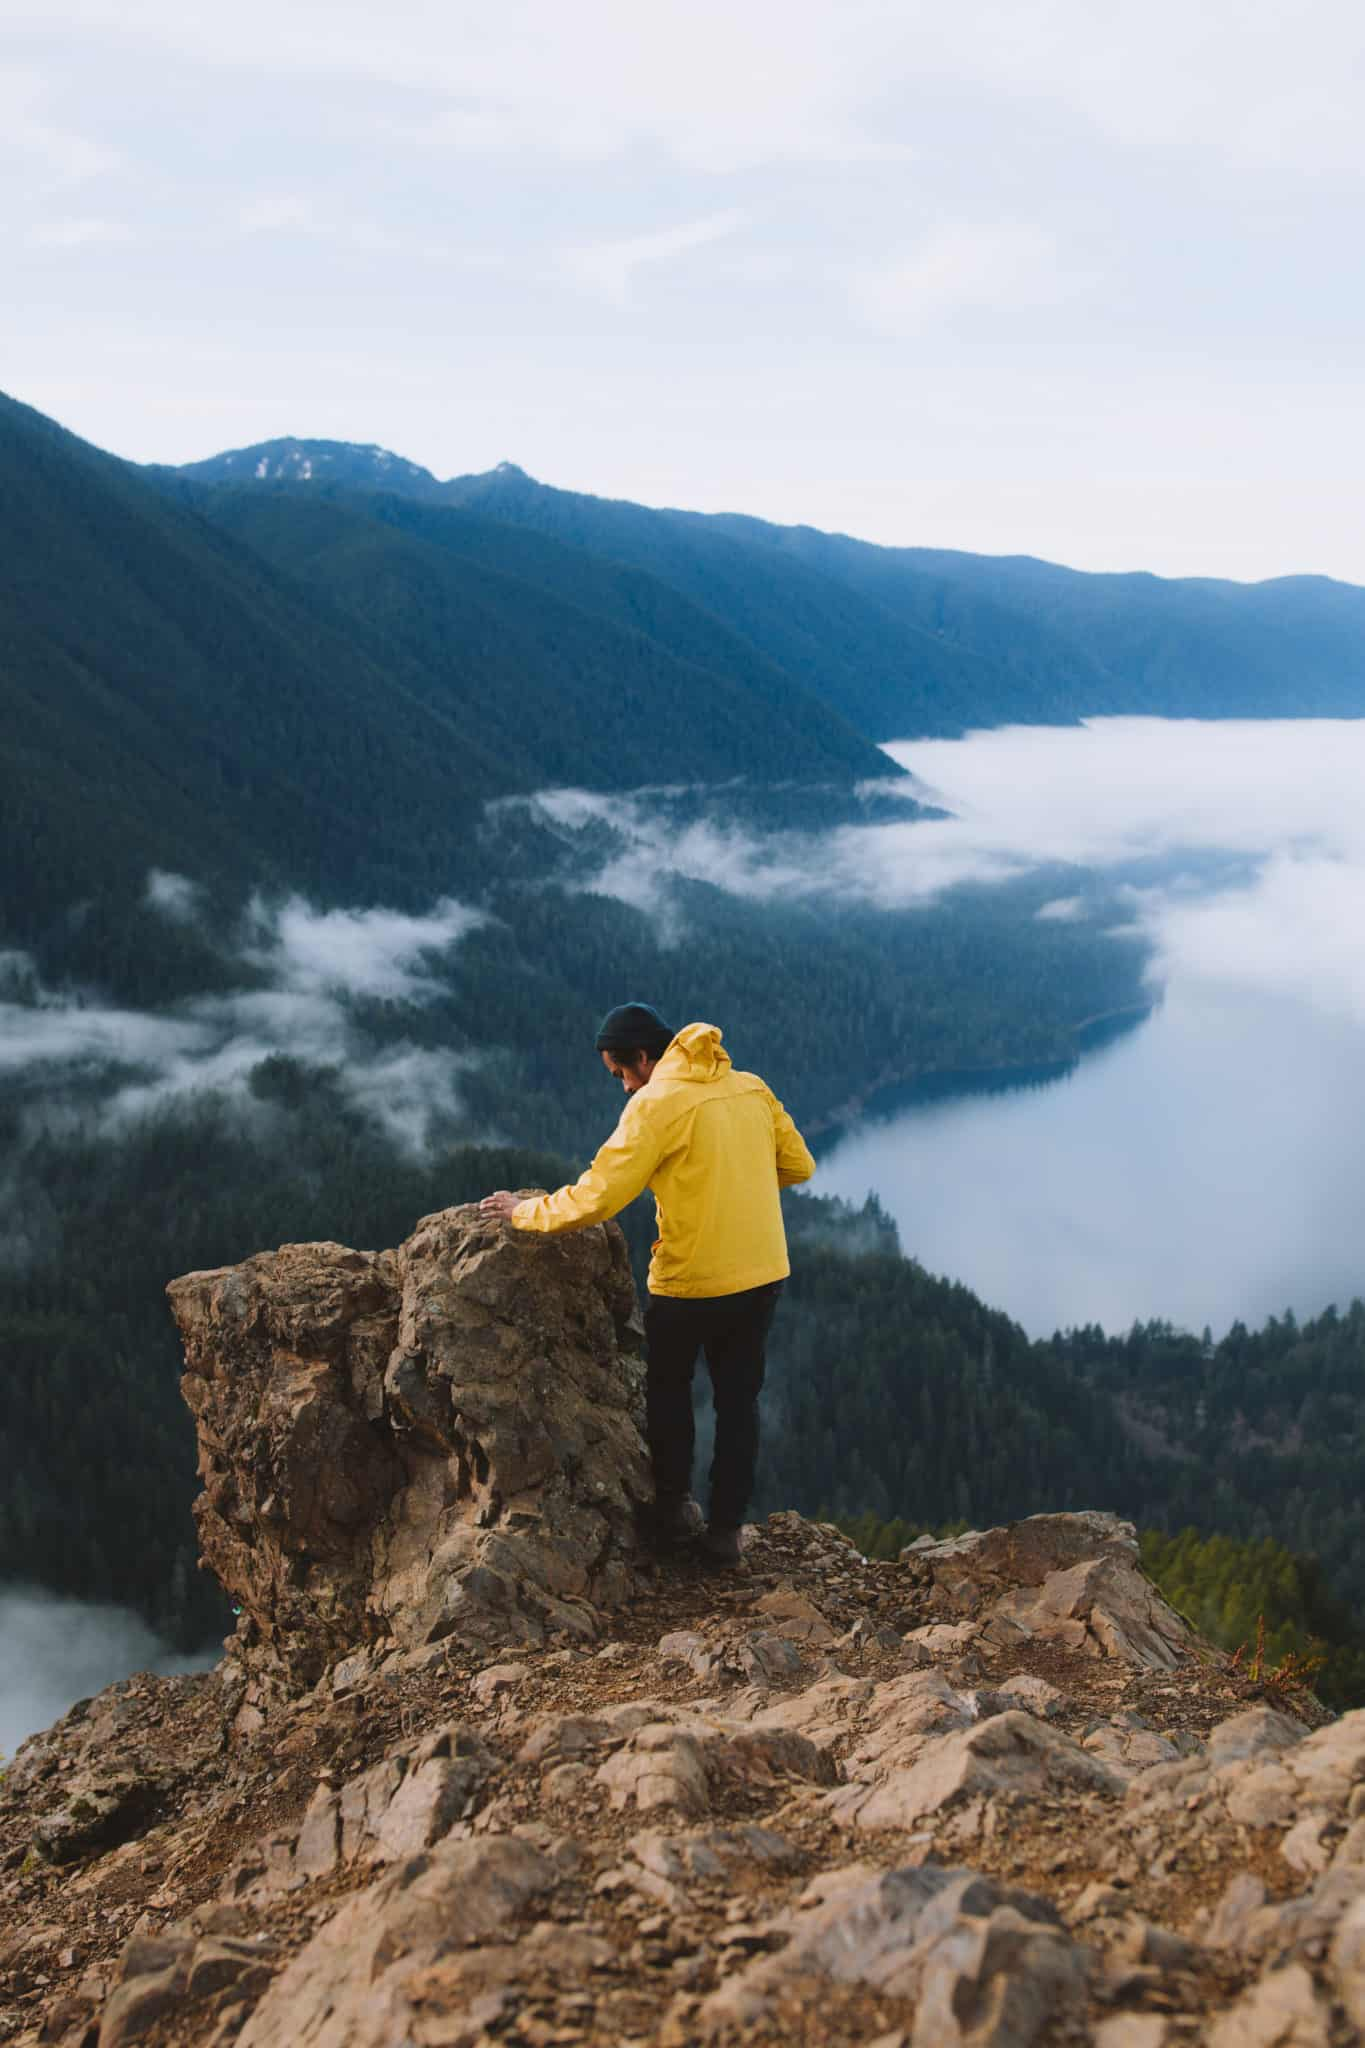 Conquer Mount Storm King with us in this epic adventure post. Located in Washington State on the Olympic Peninsula, this hike is ready to challenge any adventure lover - only the bravest will be rewarded with sweeping views of the valley below!